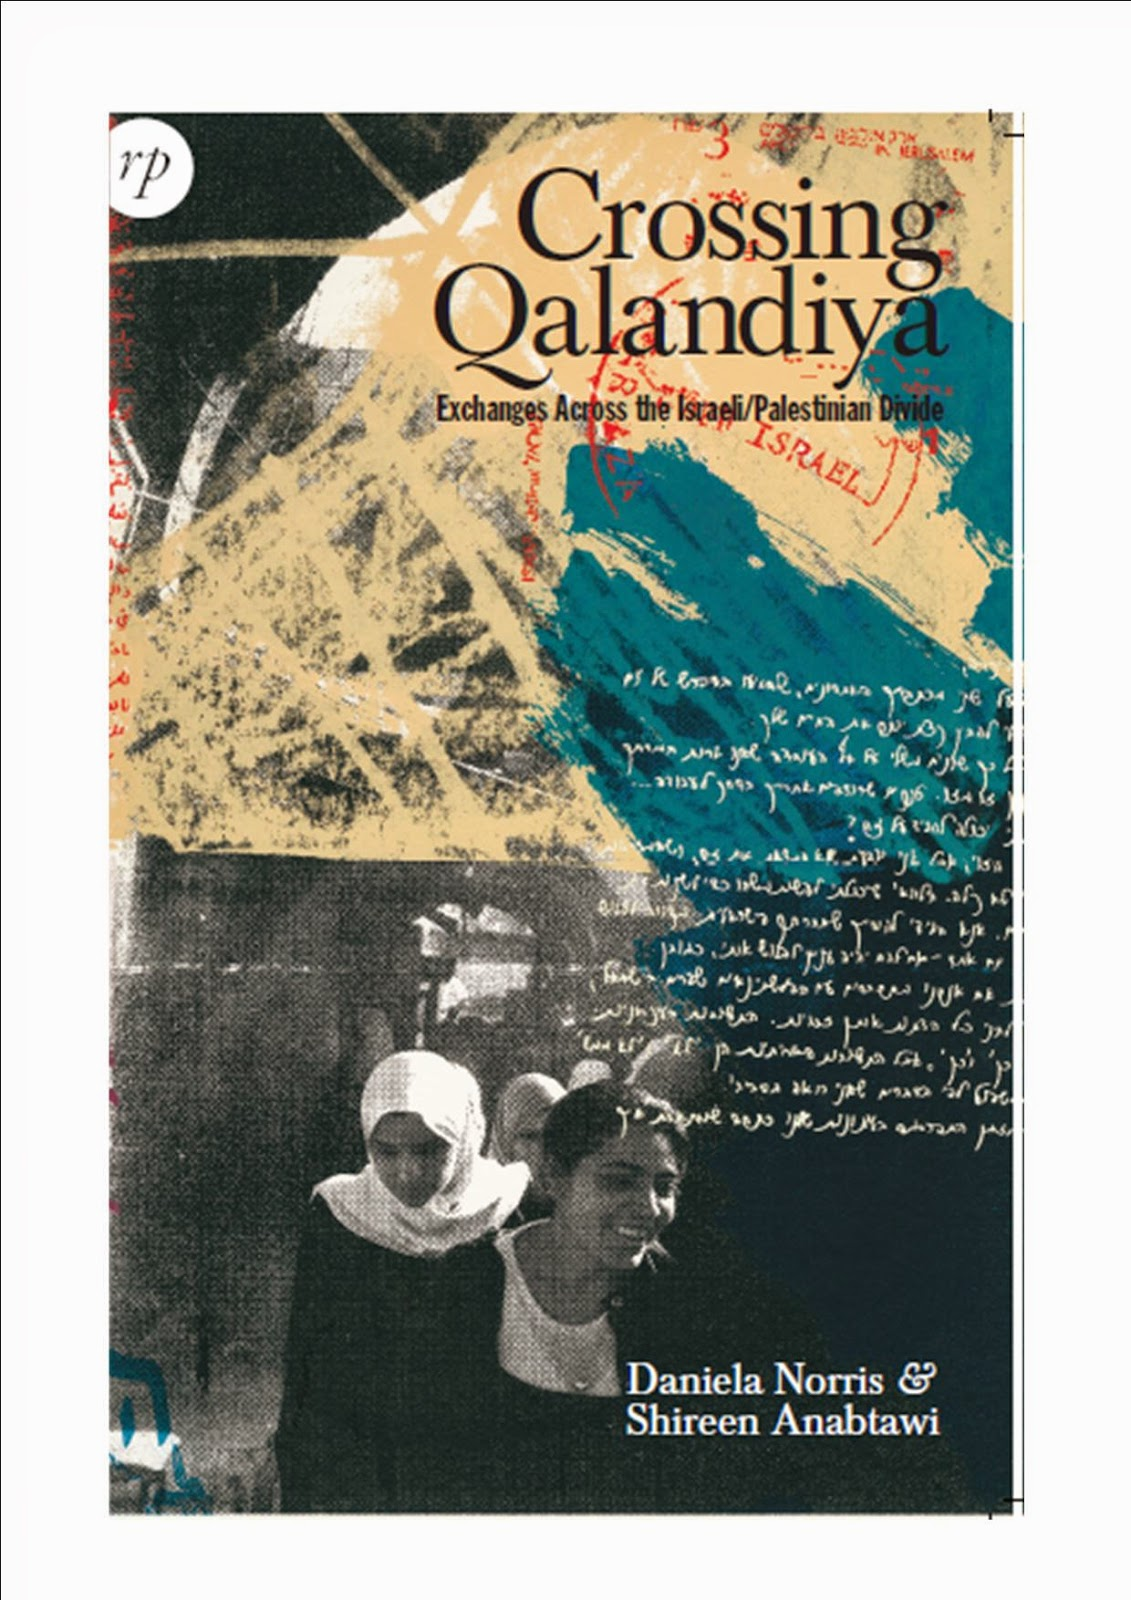 Crossing Qalandiya, book cover